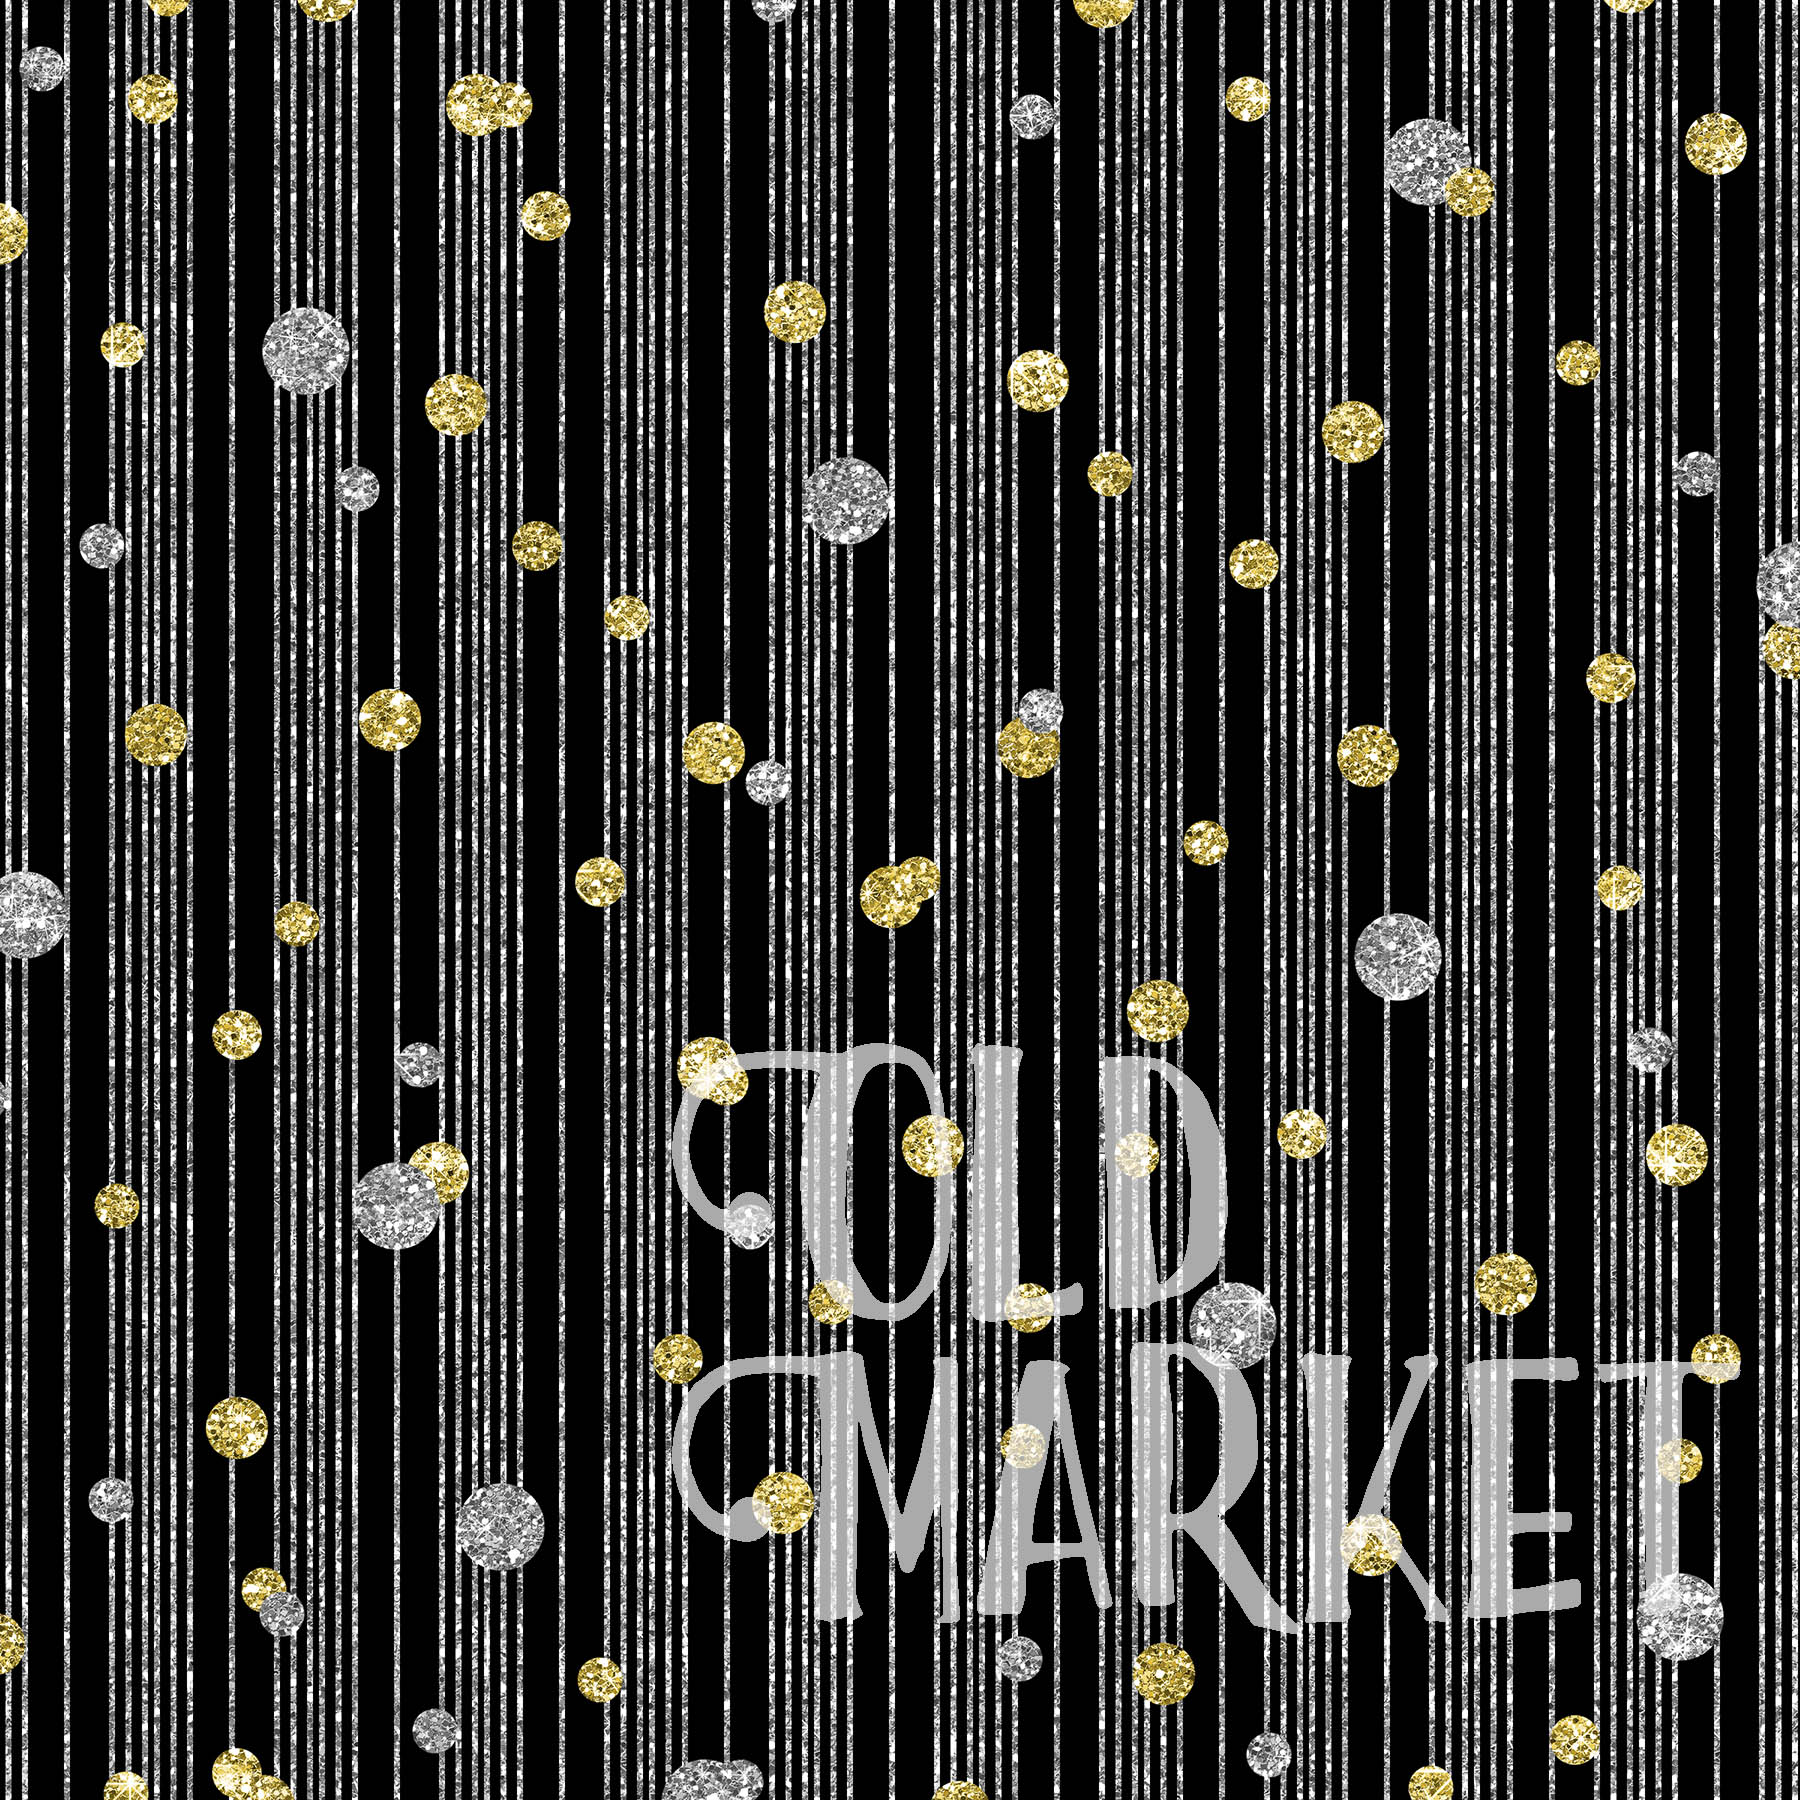 New Year Glitter Digital Paper Graphic Backgrounds By oldmarketdesigns - Image 3